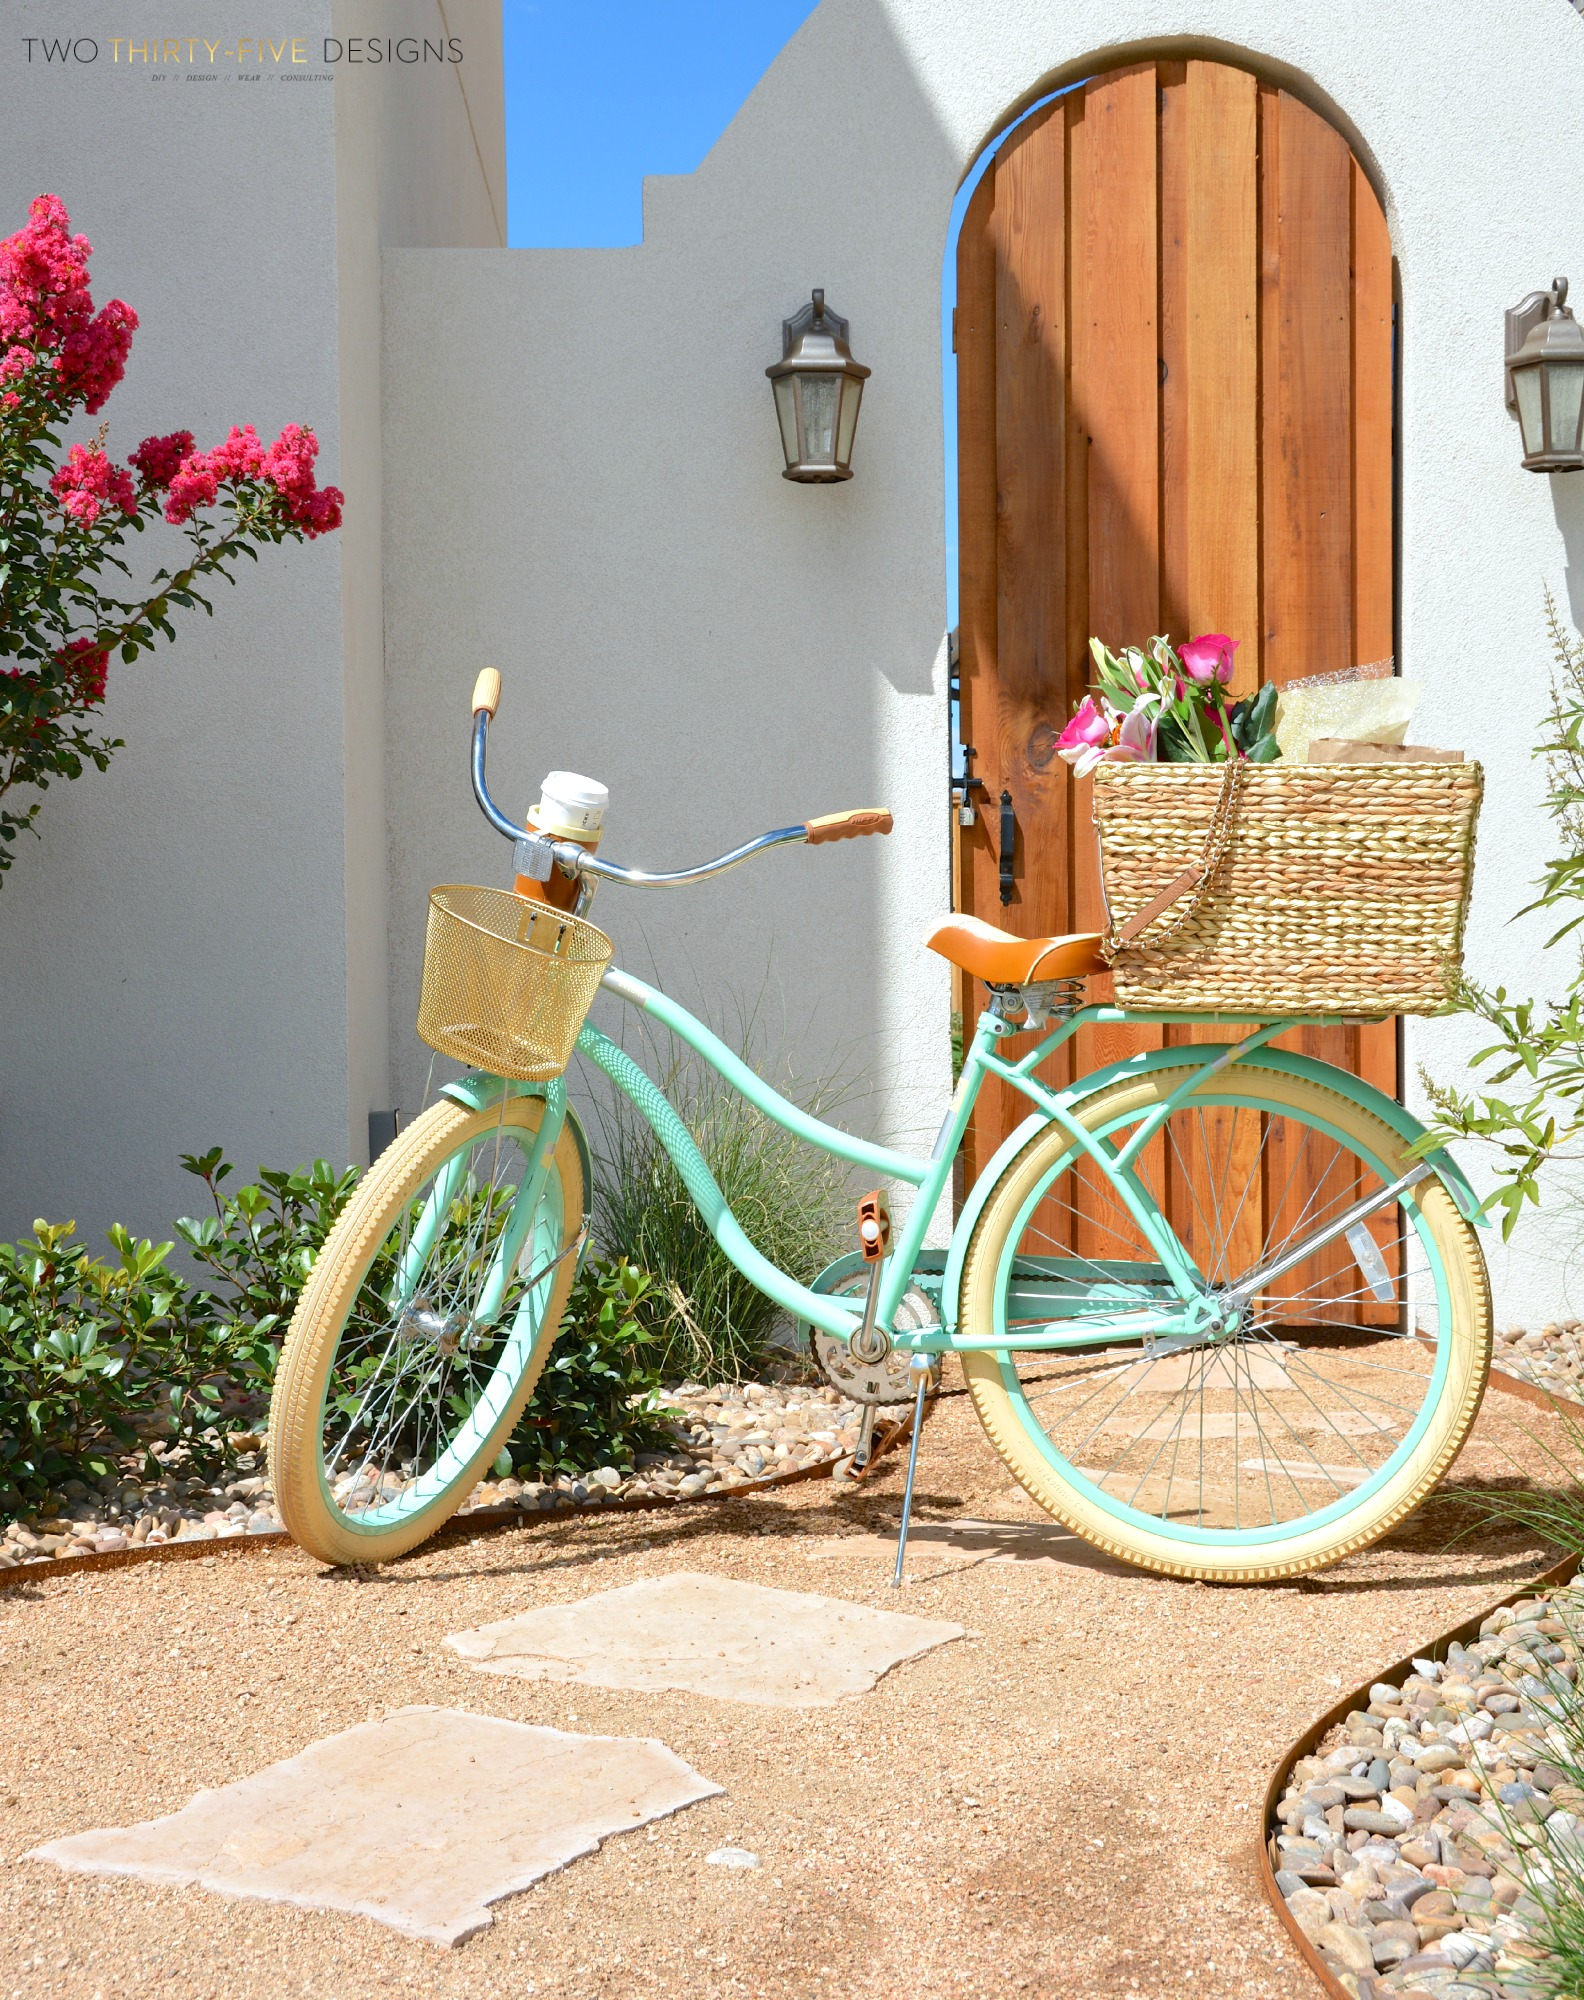 Diy Seagrass Bicycle Basket Two Thirty Five Designs